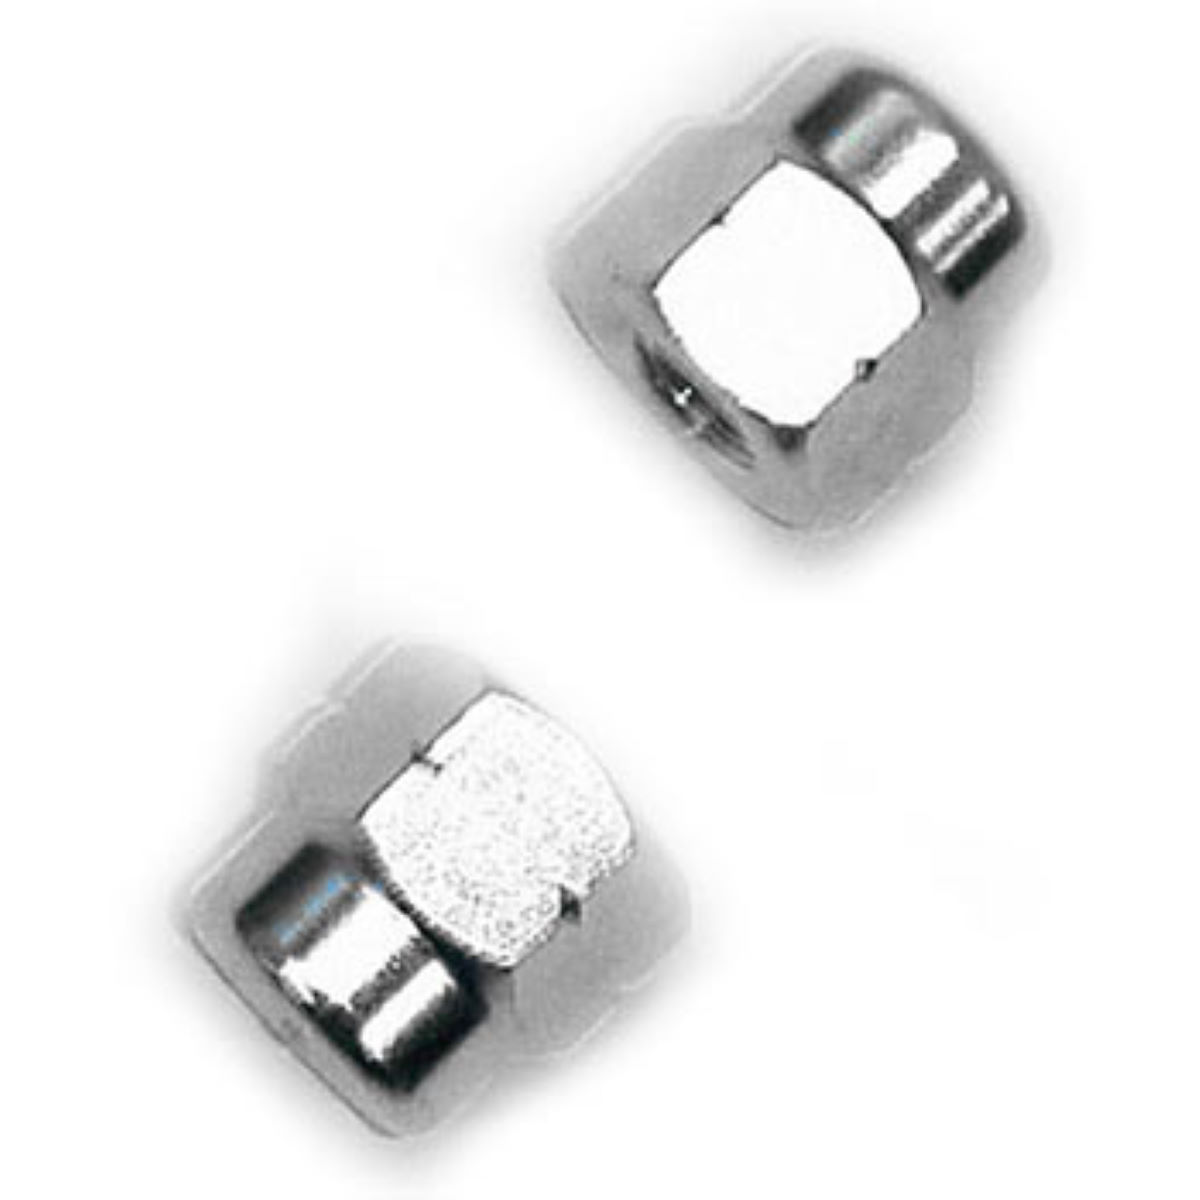 Tacx Axle Nuts (10mm) for Non QR Wheels